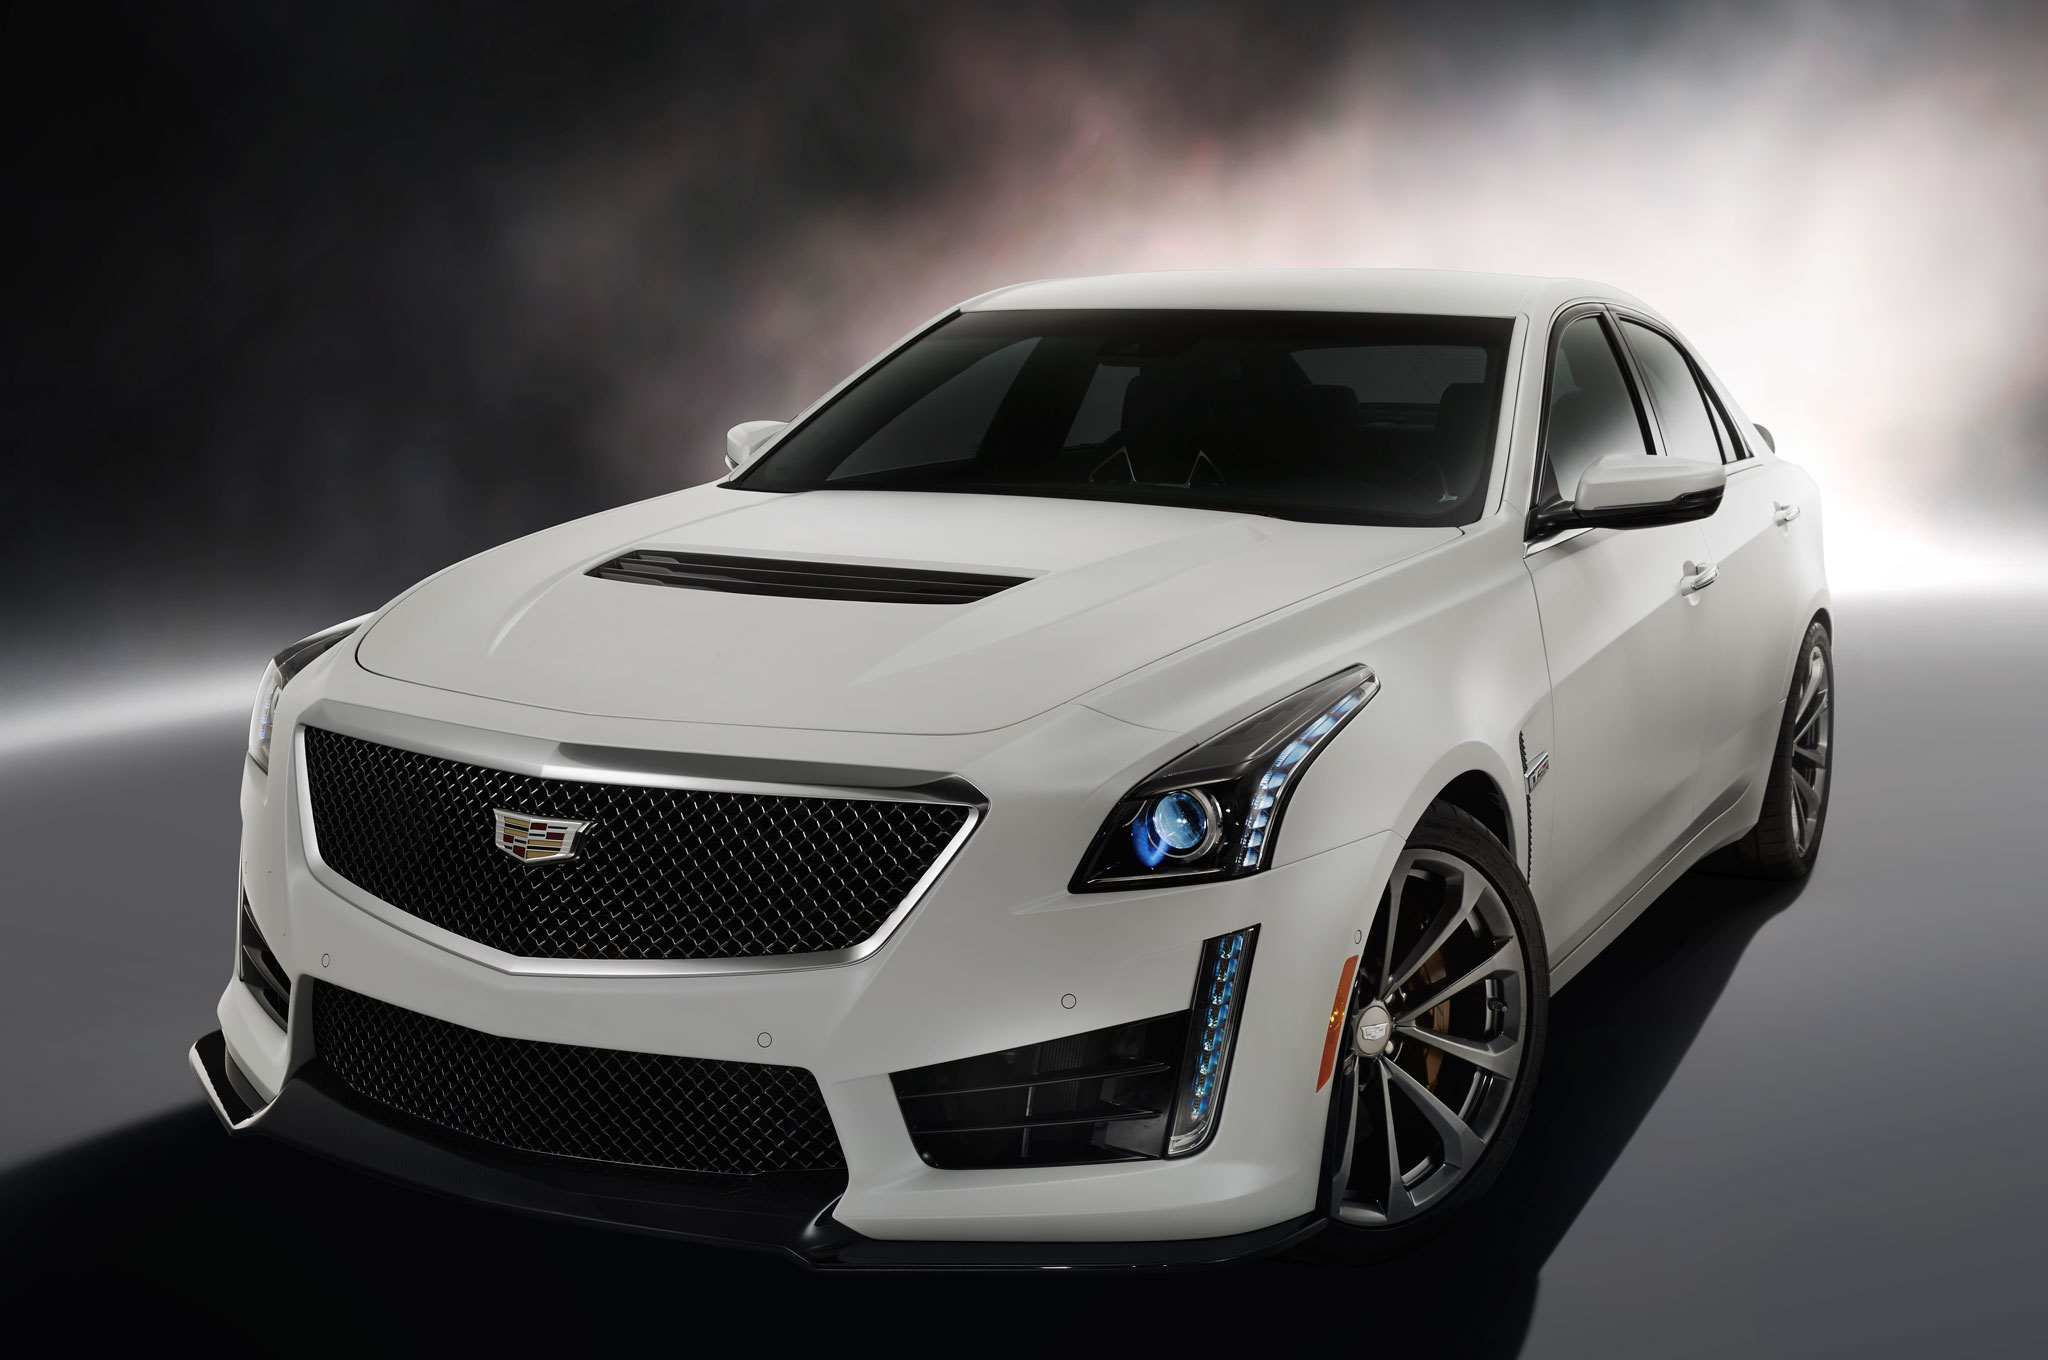 2016 Cadillac Ats V Exterior Profile (View 18 of 18)